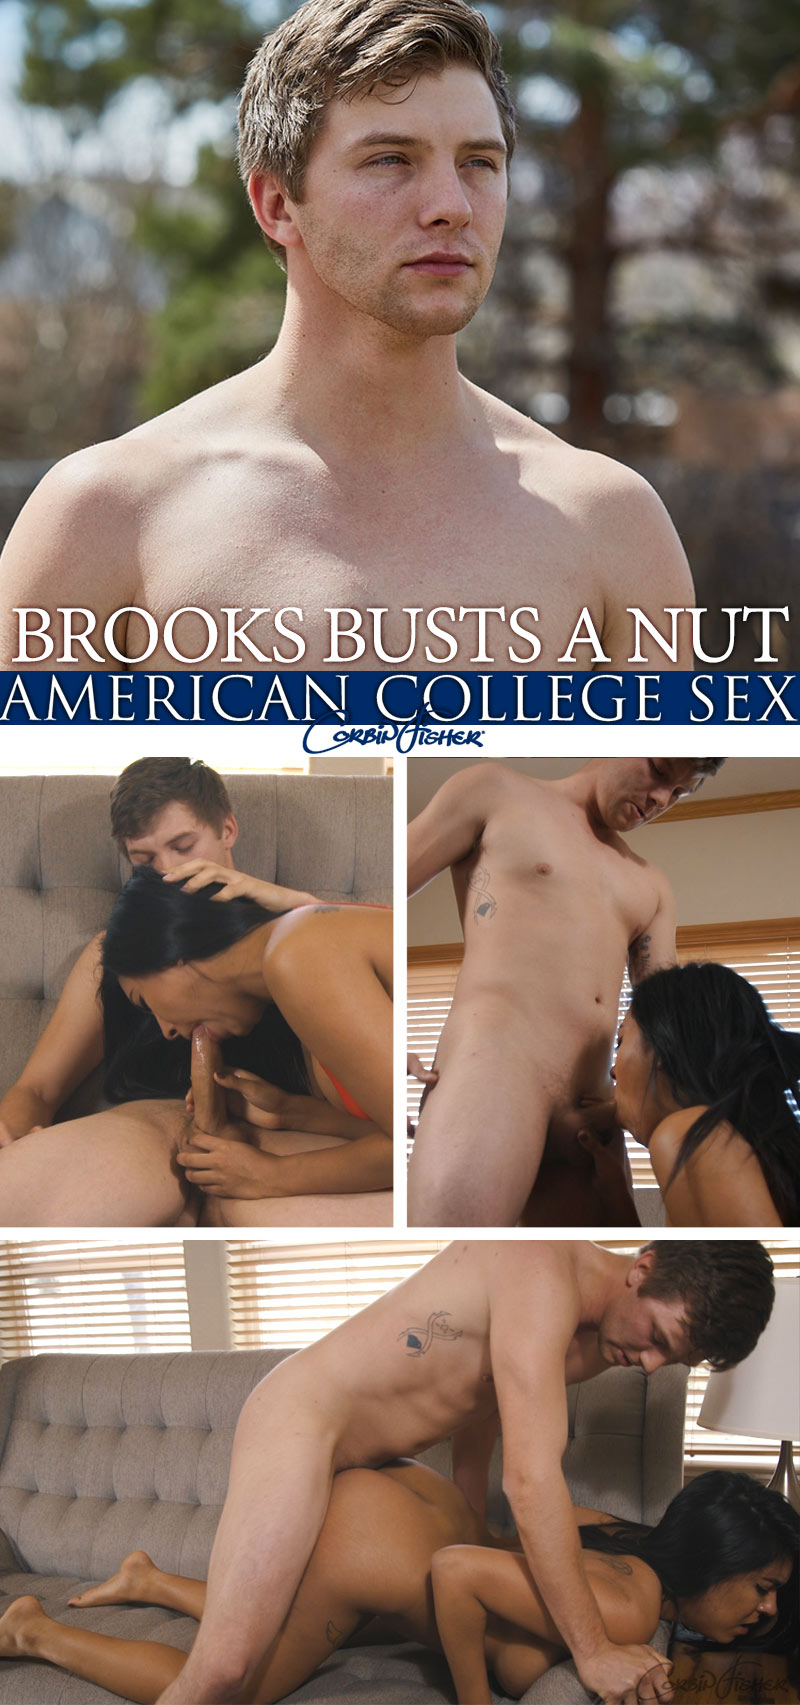 Brooks Busts A Nut at AmateurCollegeSex